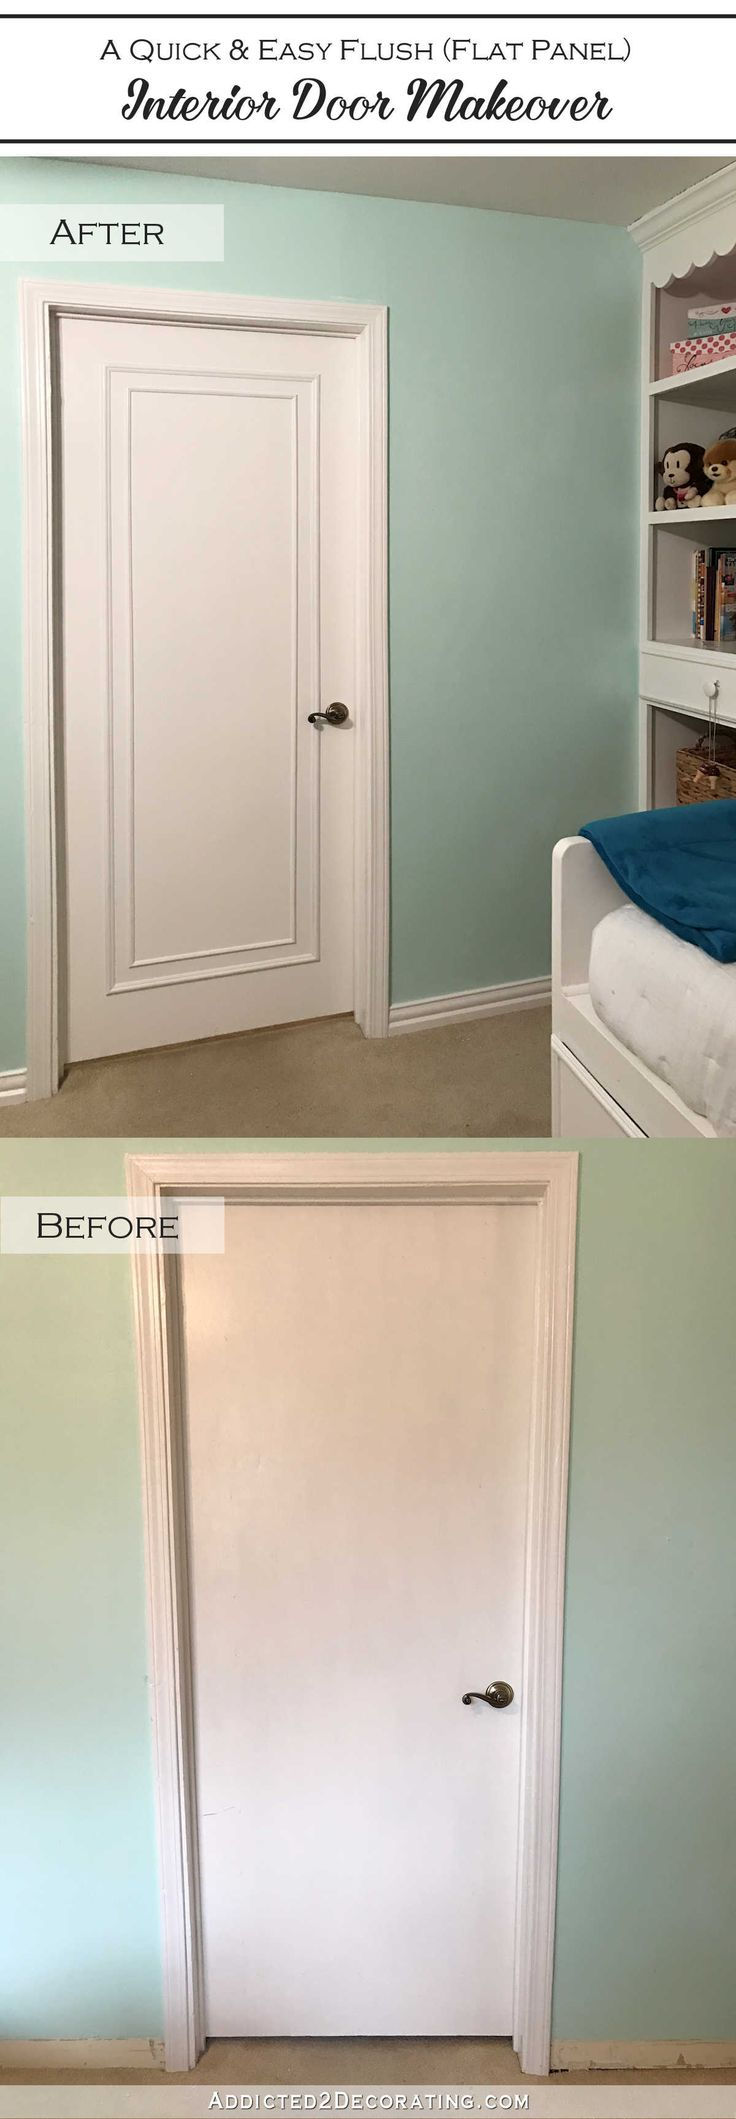 top 25+ best bedroom door decorations ideas on pinterest | toddler